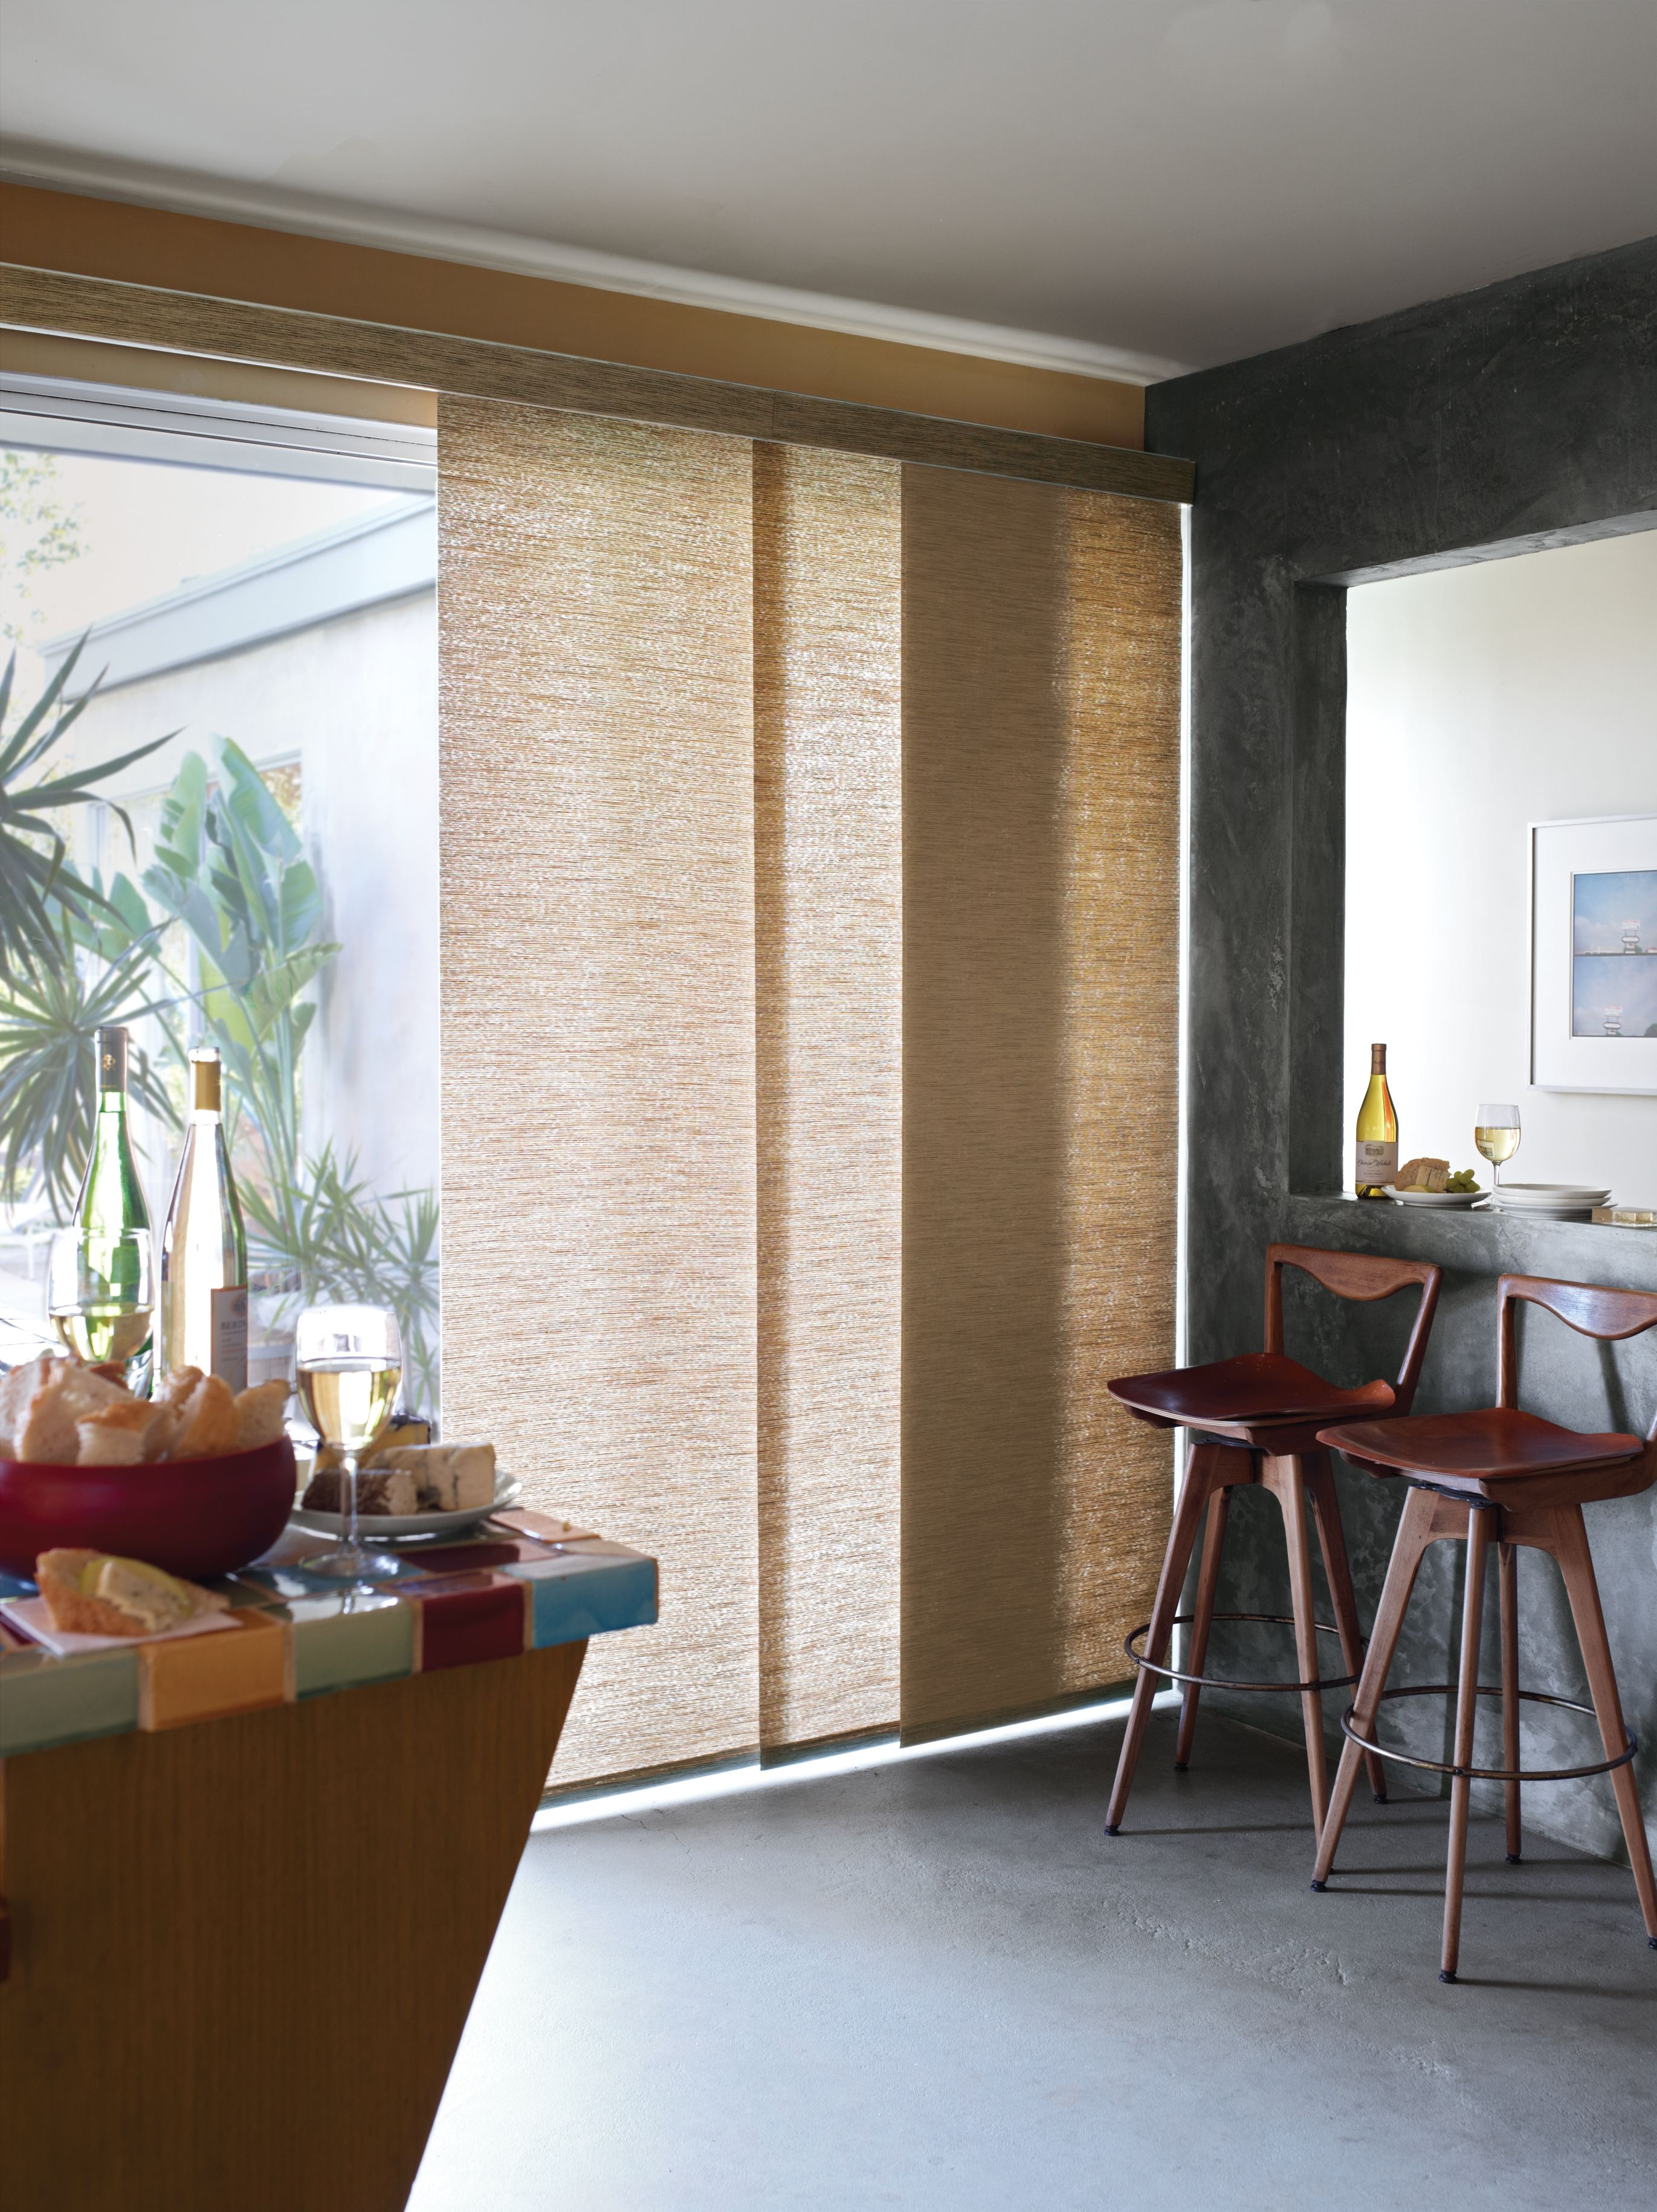 These blinds are so perfect for a sliding door hides the agly